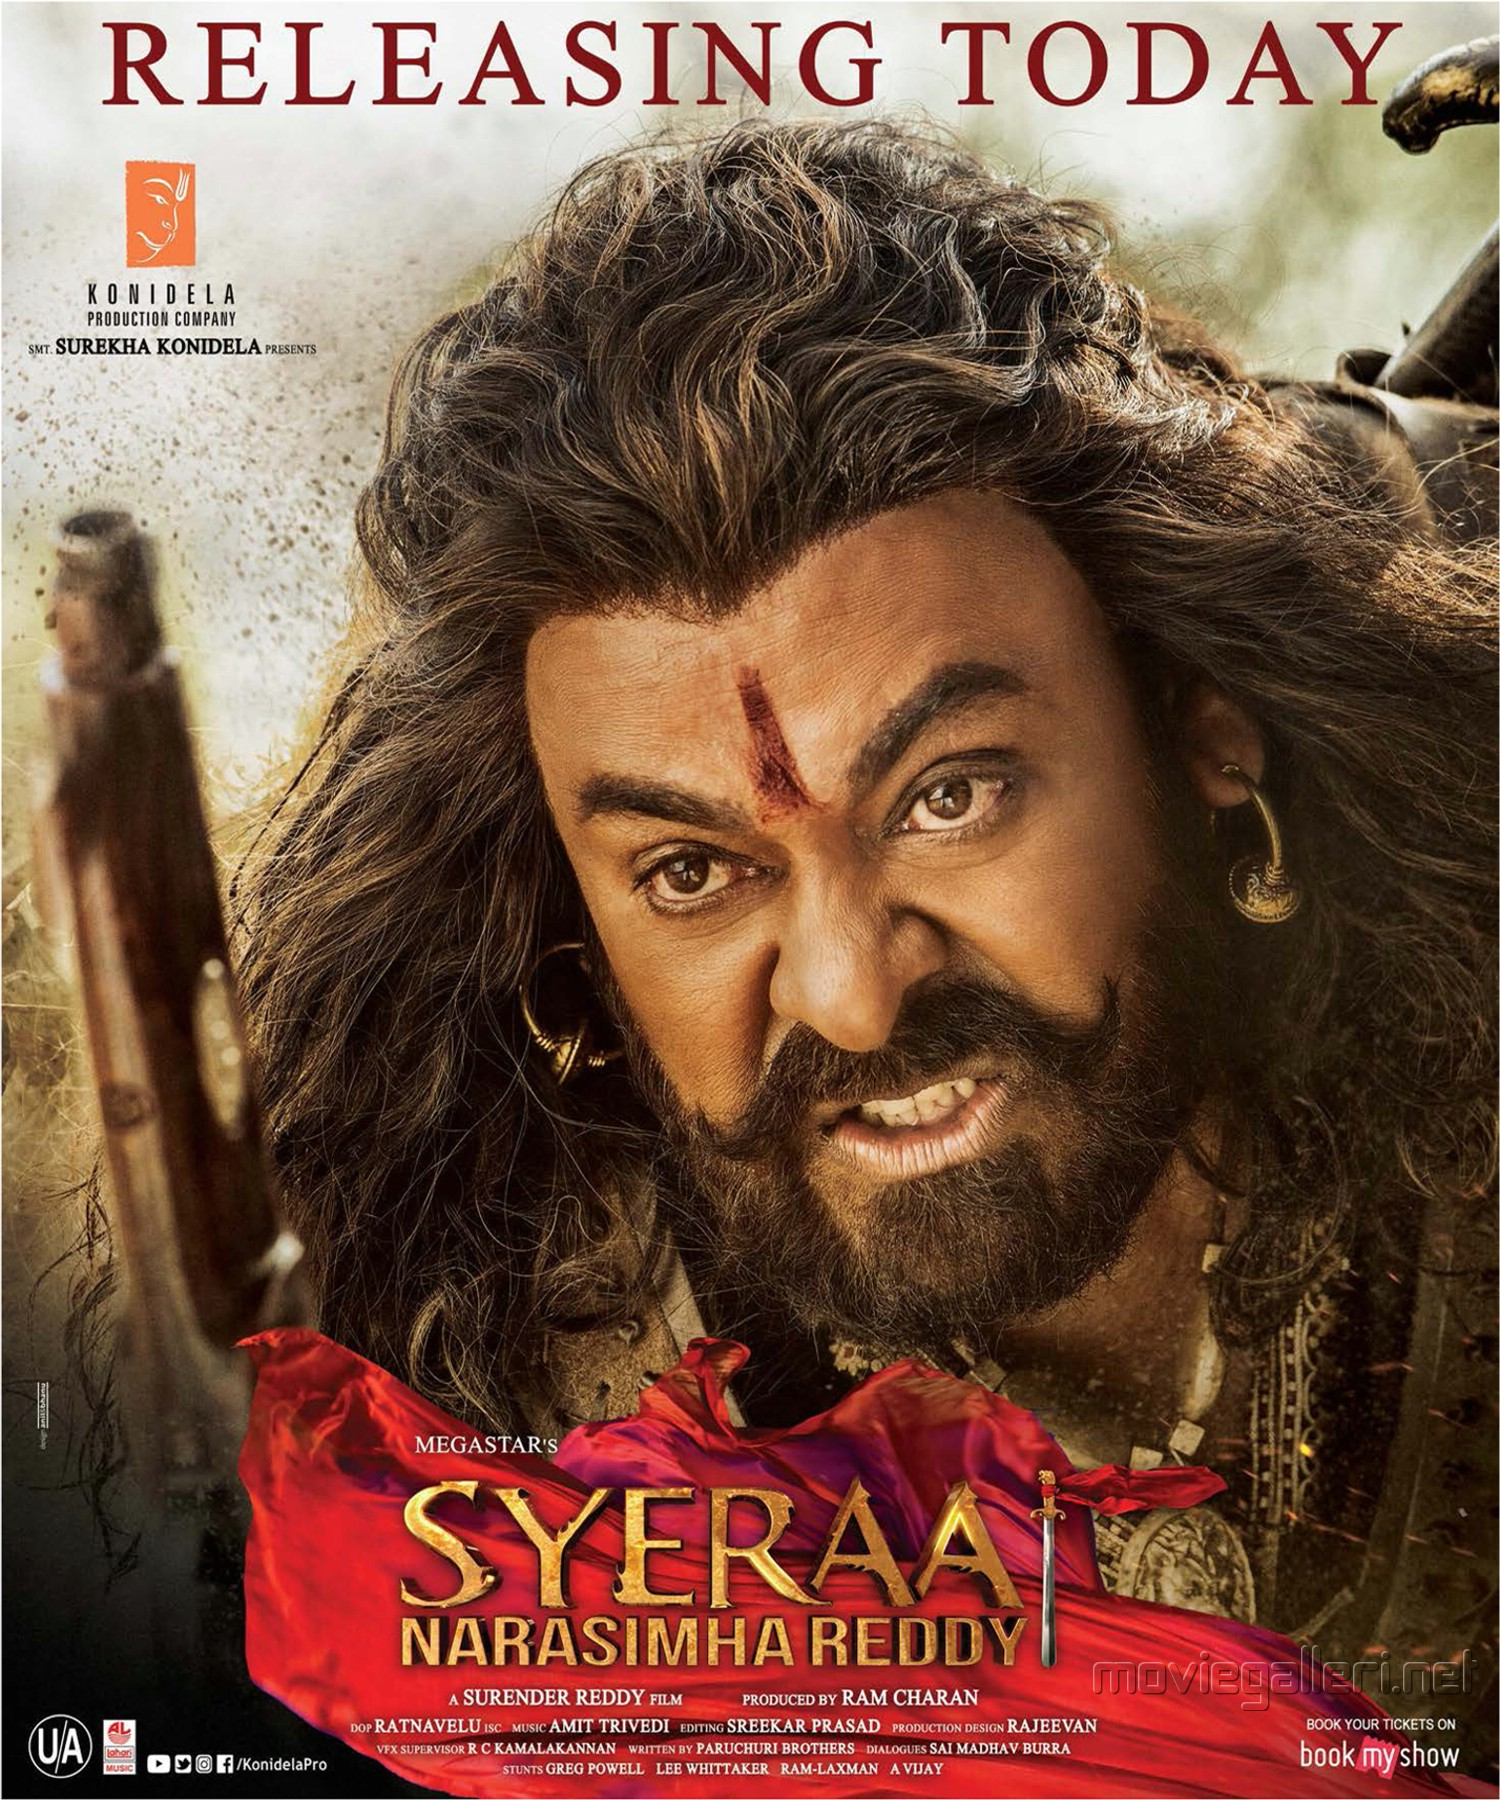 Chiranjeevi's Sye Raa Narasimha Reddy Movie Release Today Posters HD